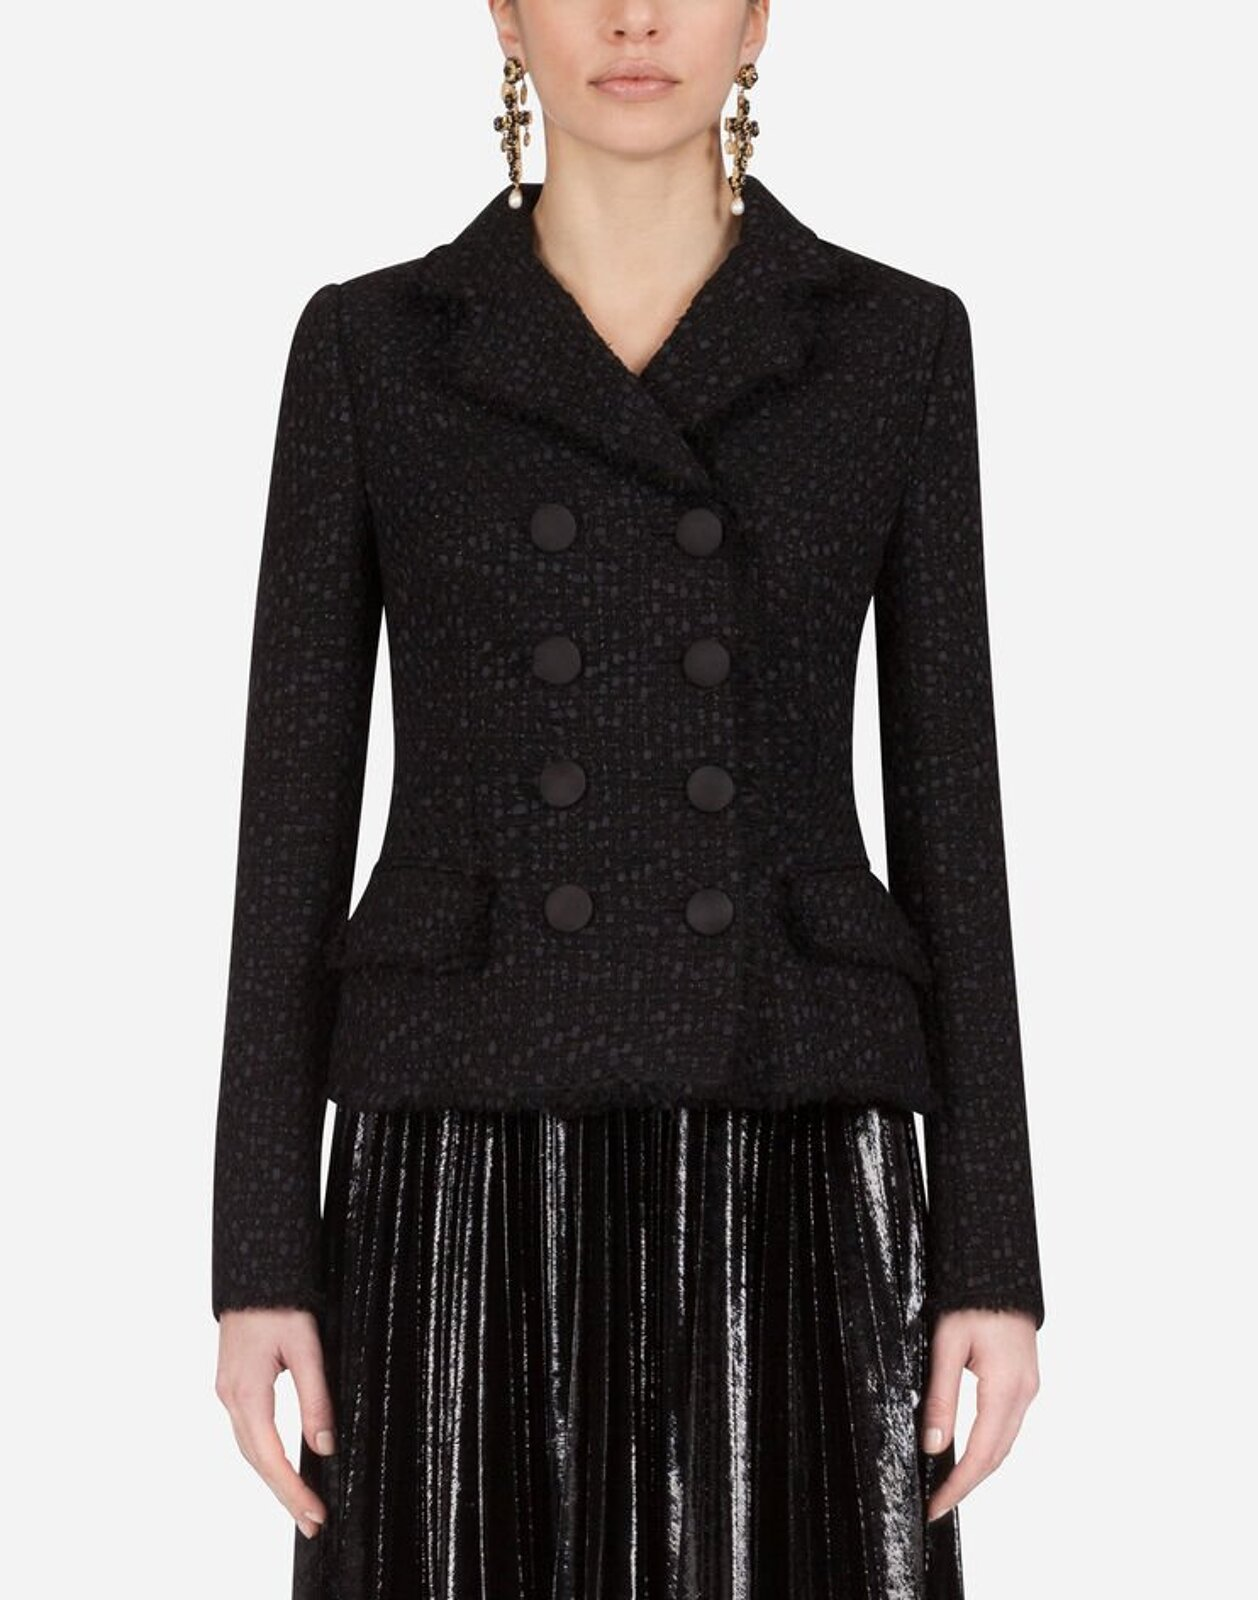 Short Double-Breasted Tweed Jacket - Dolce & Gabbana